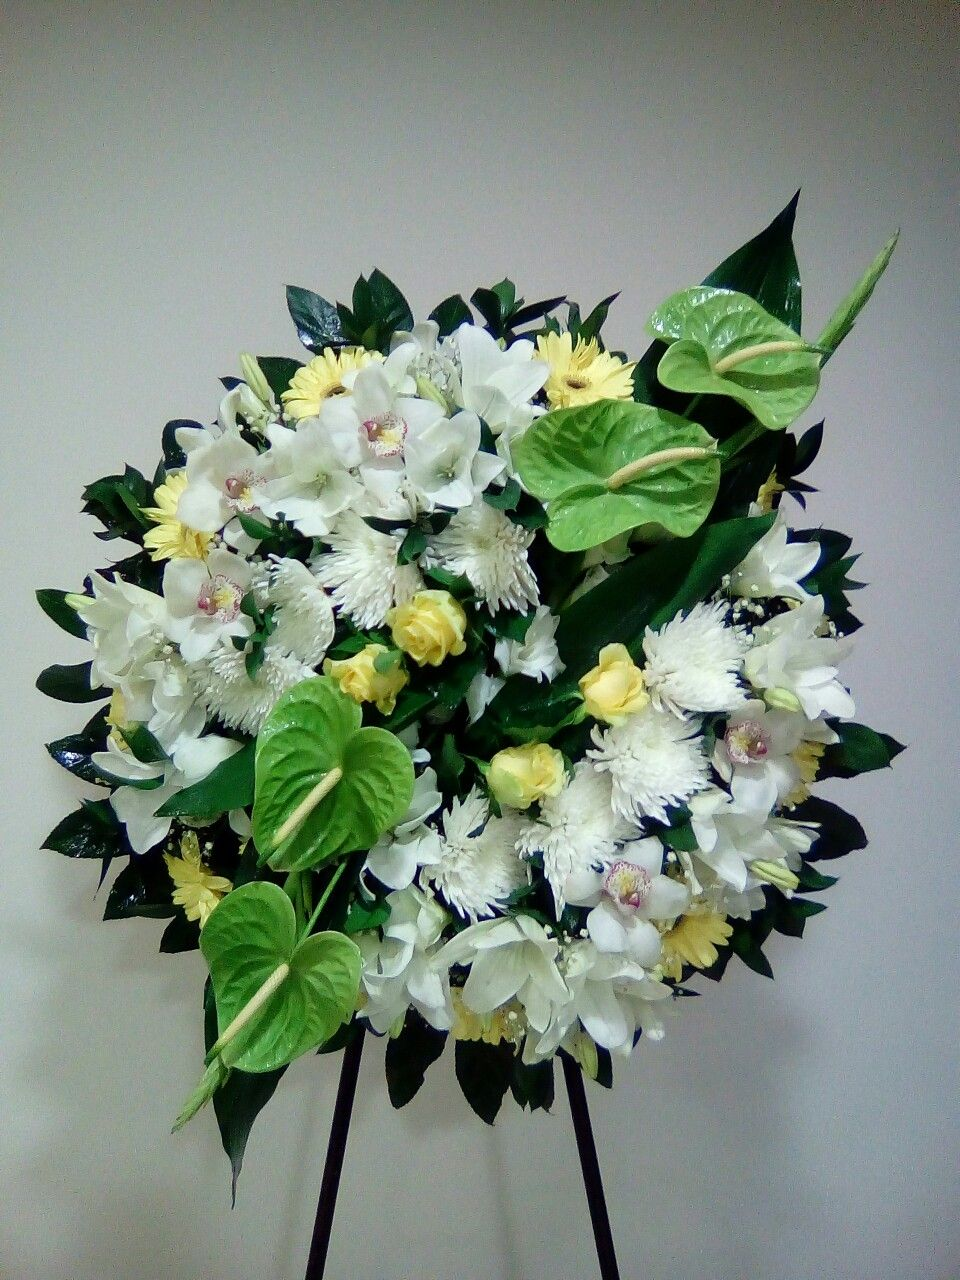 Pin By Bob Alfra On Floral Design Pinterest Funeral Funeral